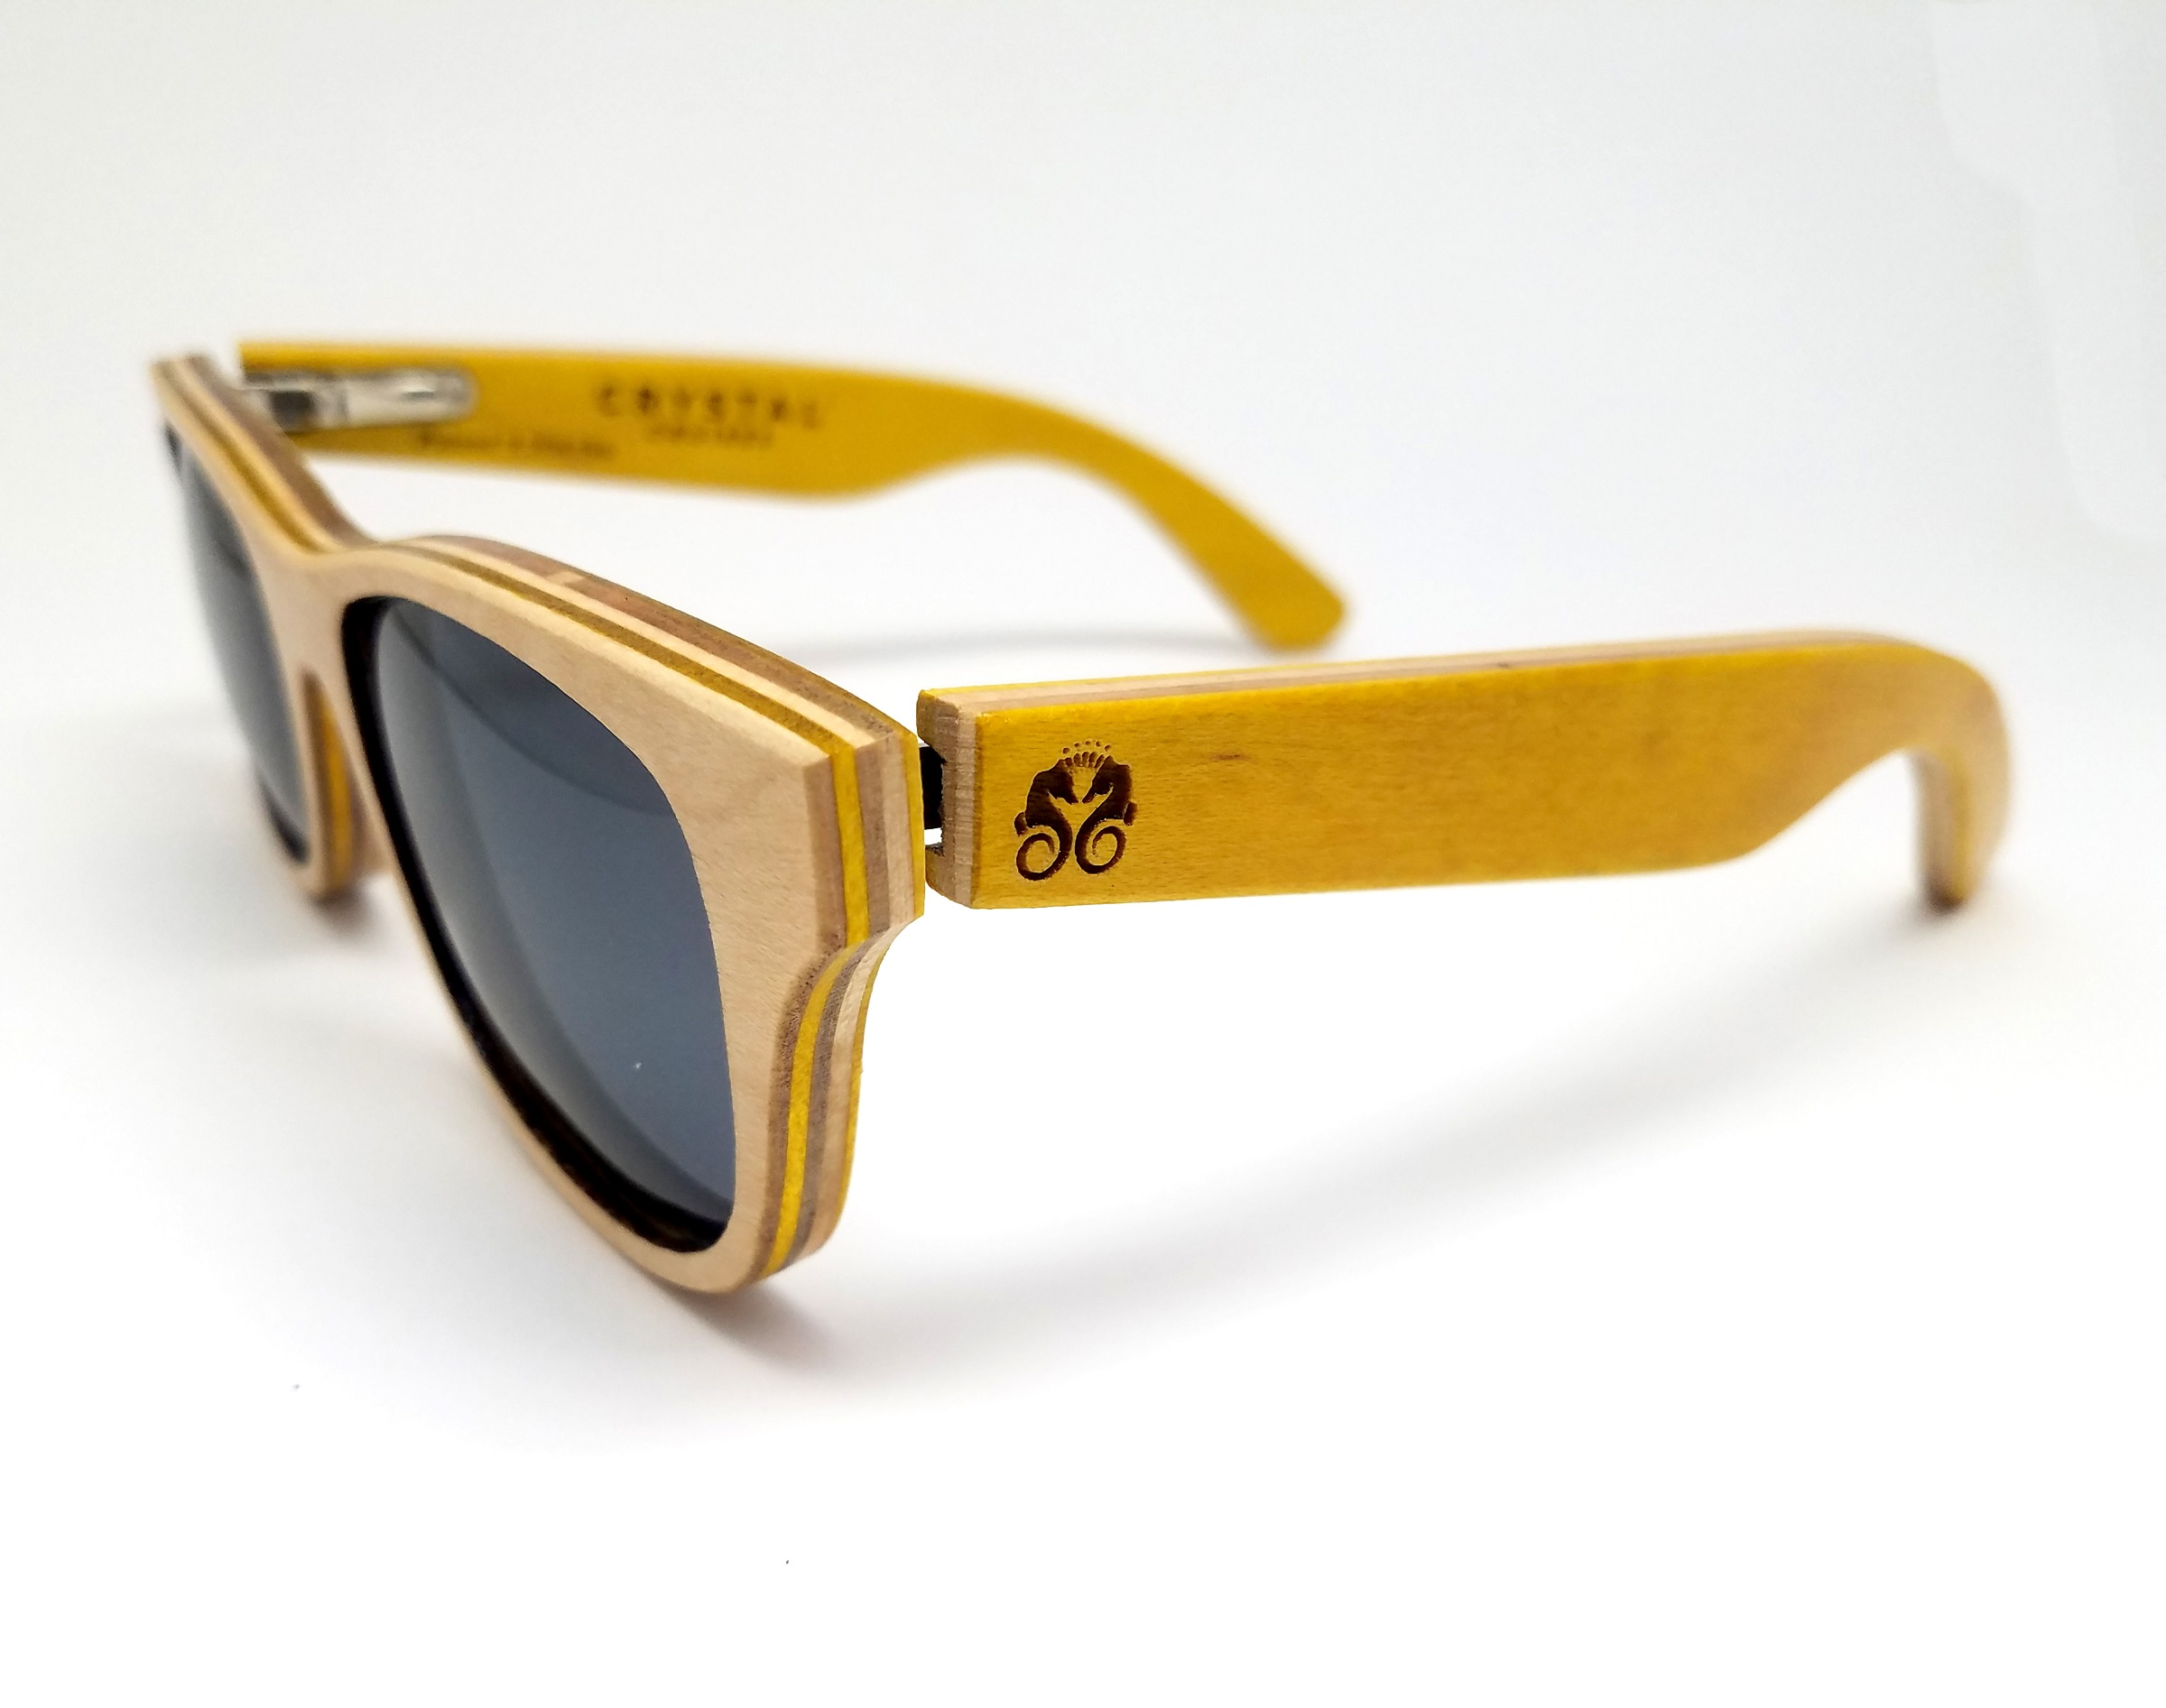 Sycamore SK8Glasses™ - Yellow - Crystal Cruise - v1.jpg